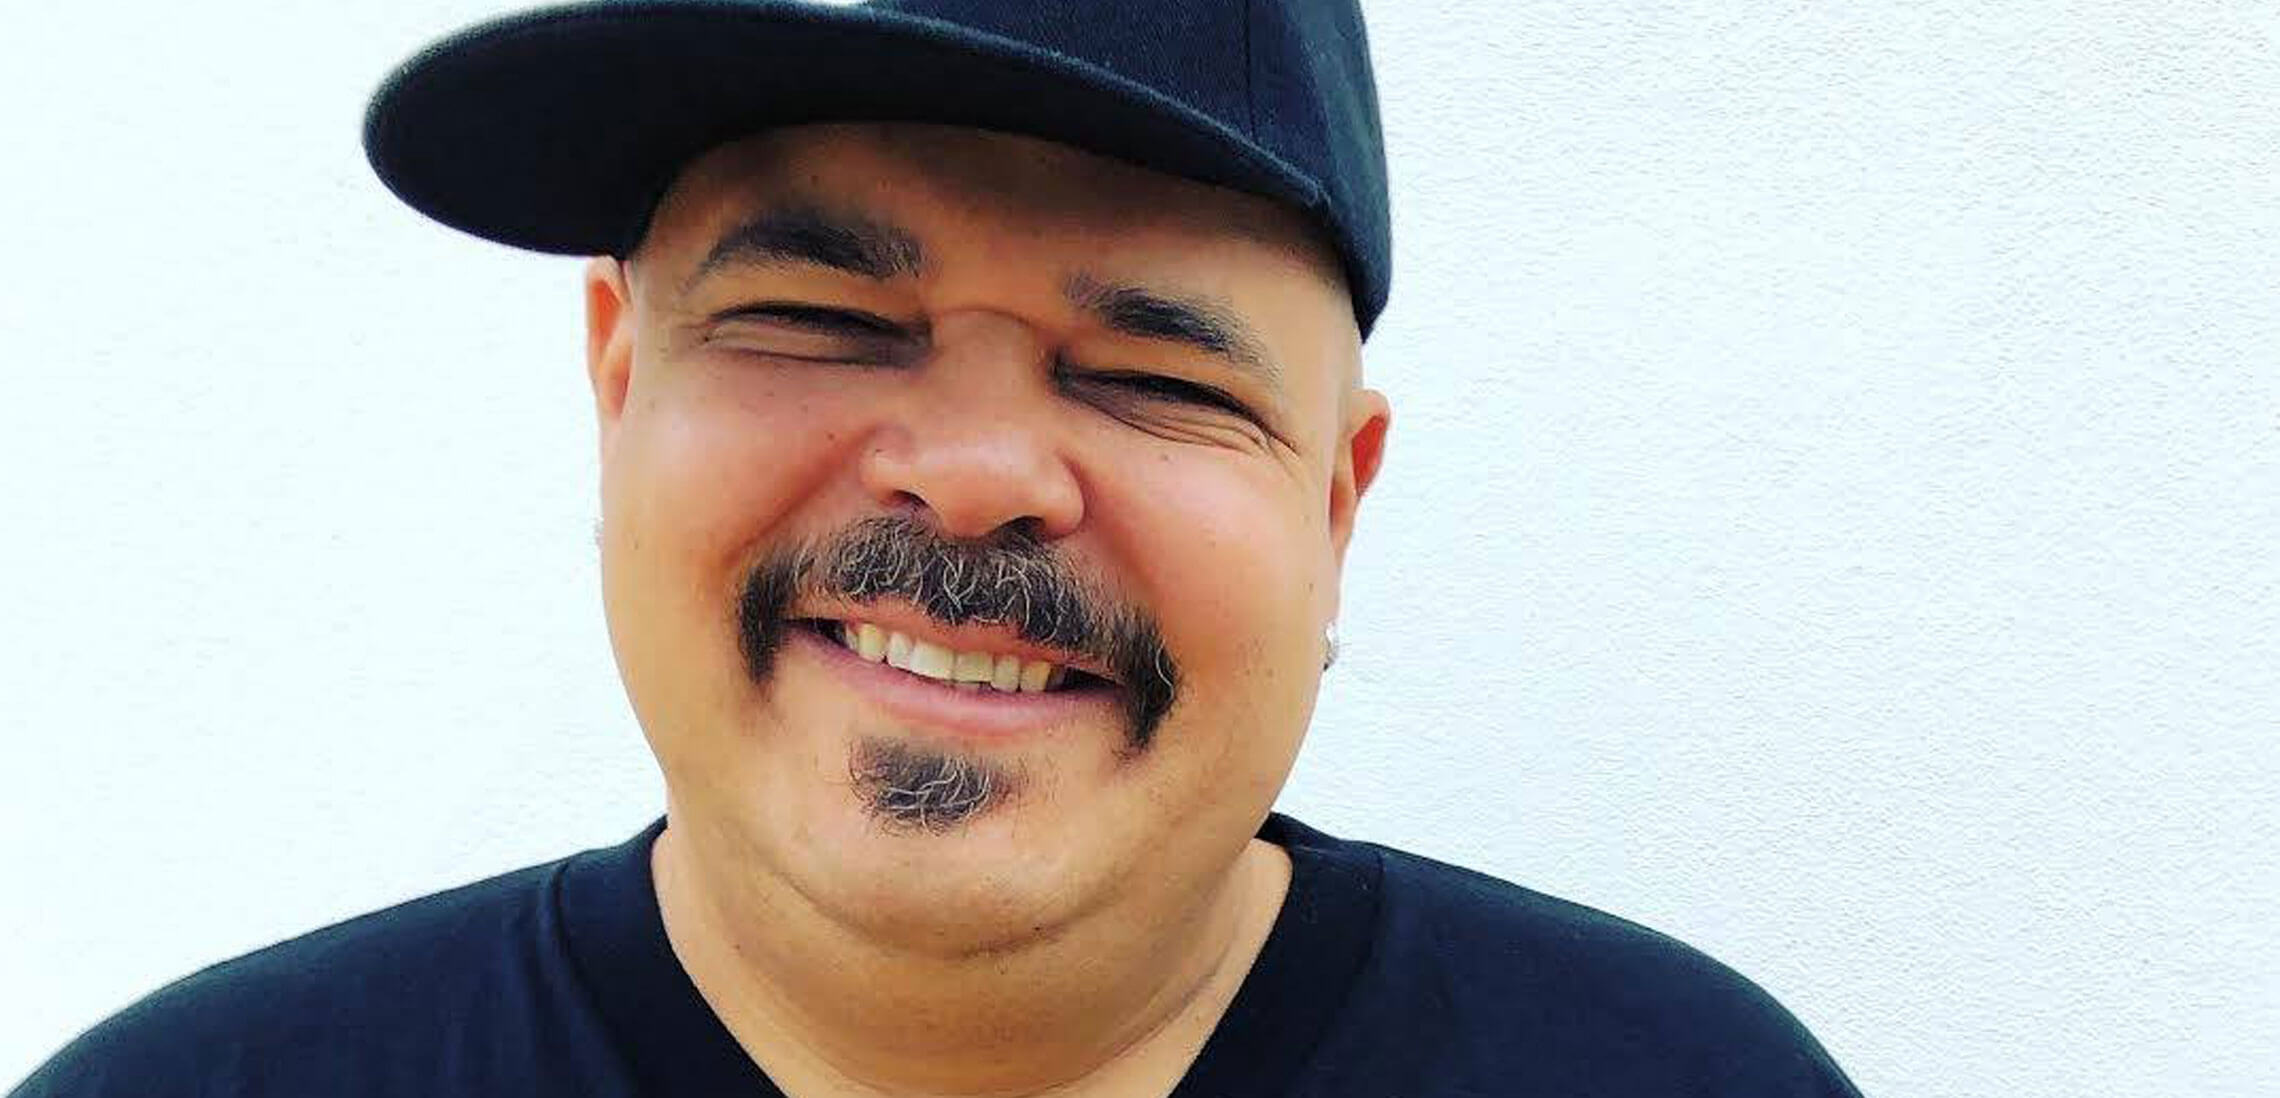 DJ Sneak - The Difference EP hero